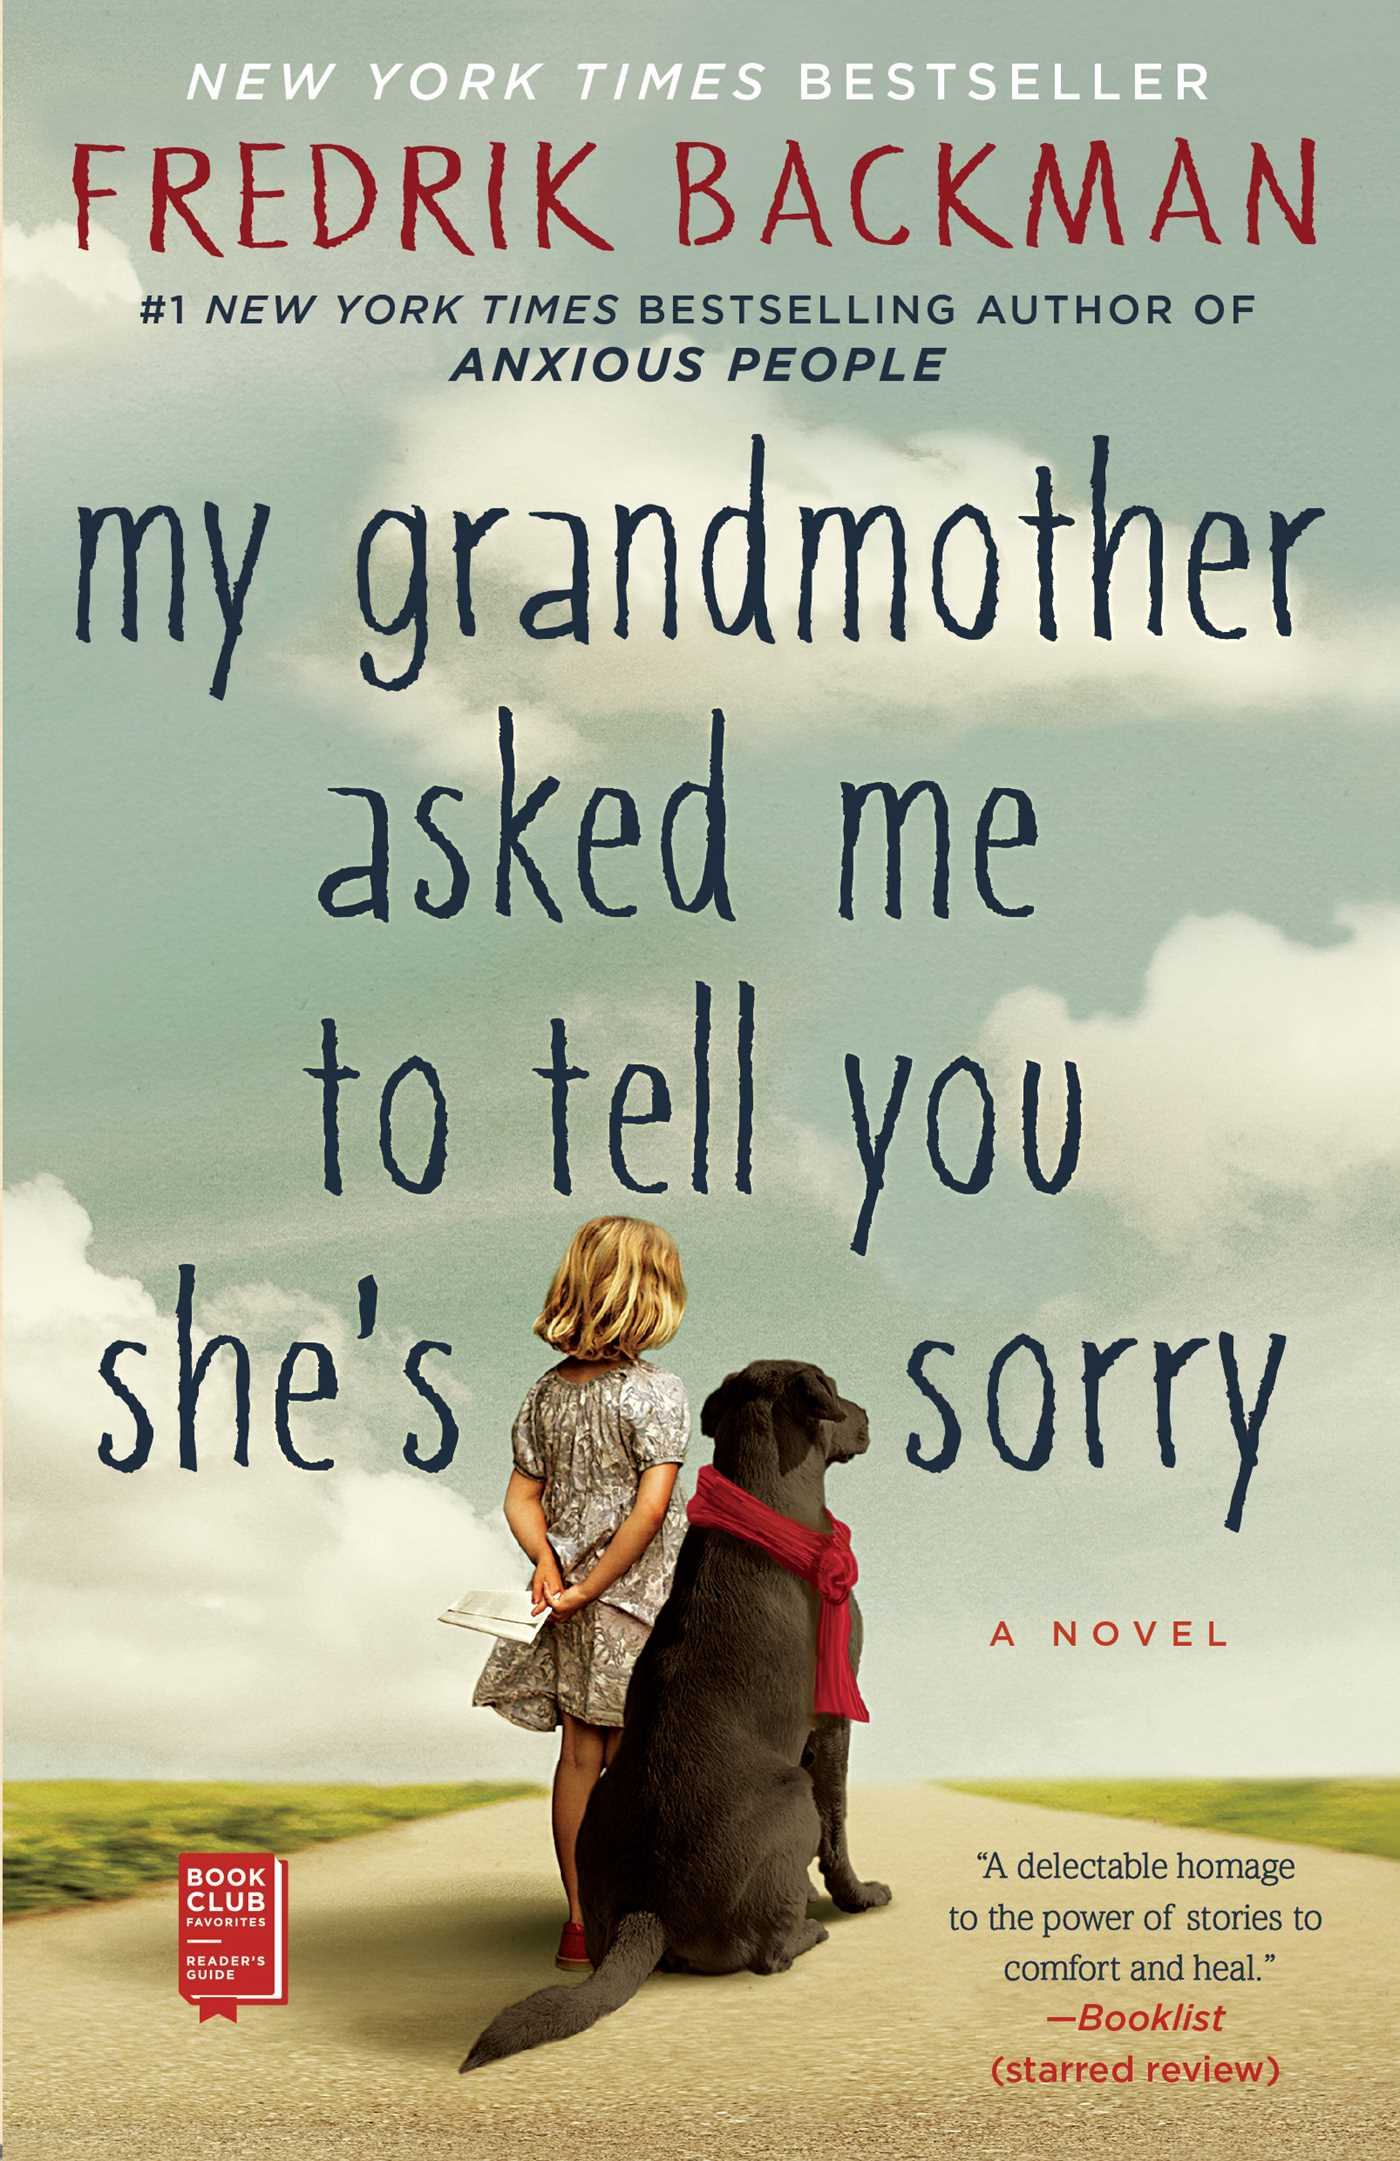 My grandmother asked me to tell you shes sorry 9781501115080 hr